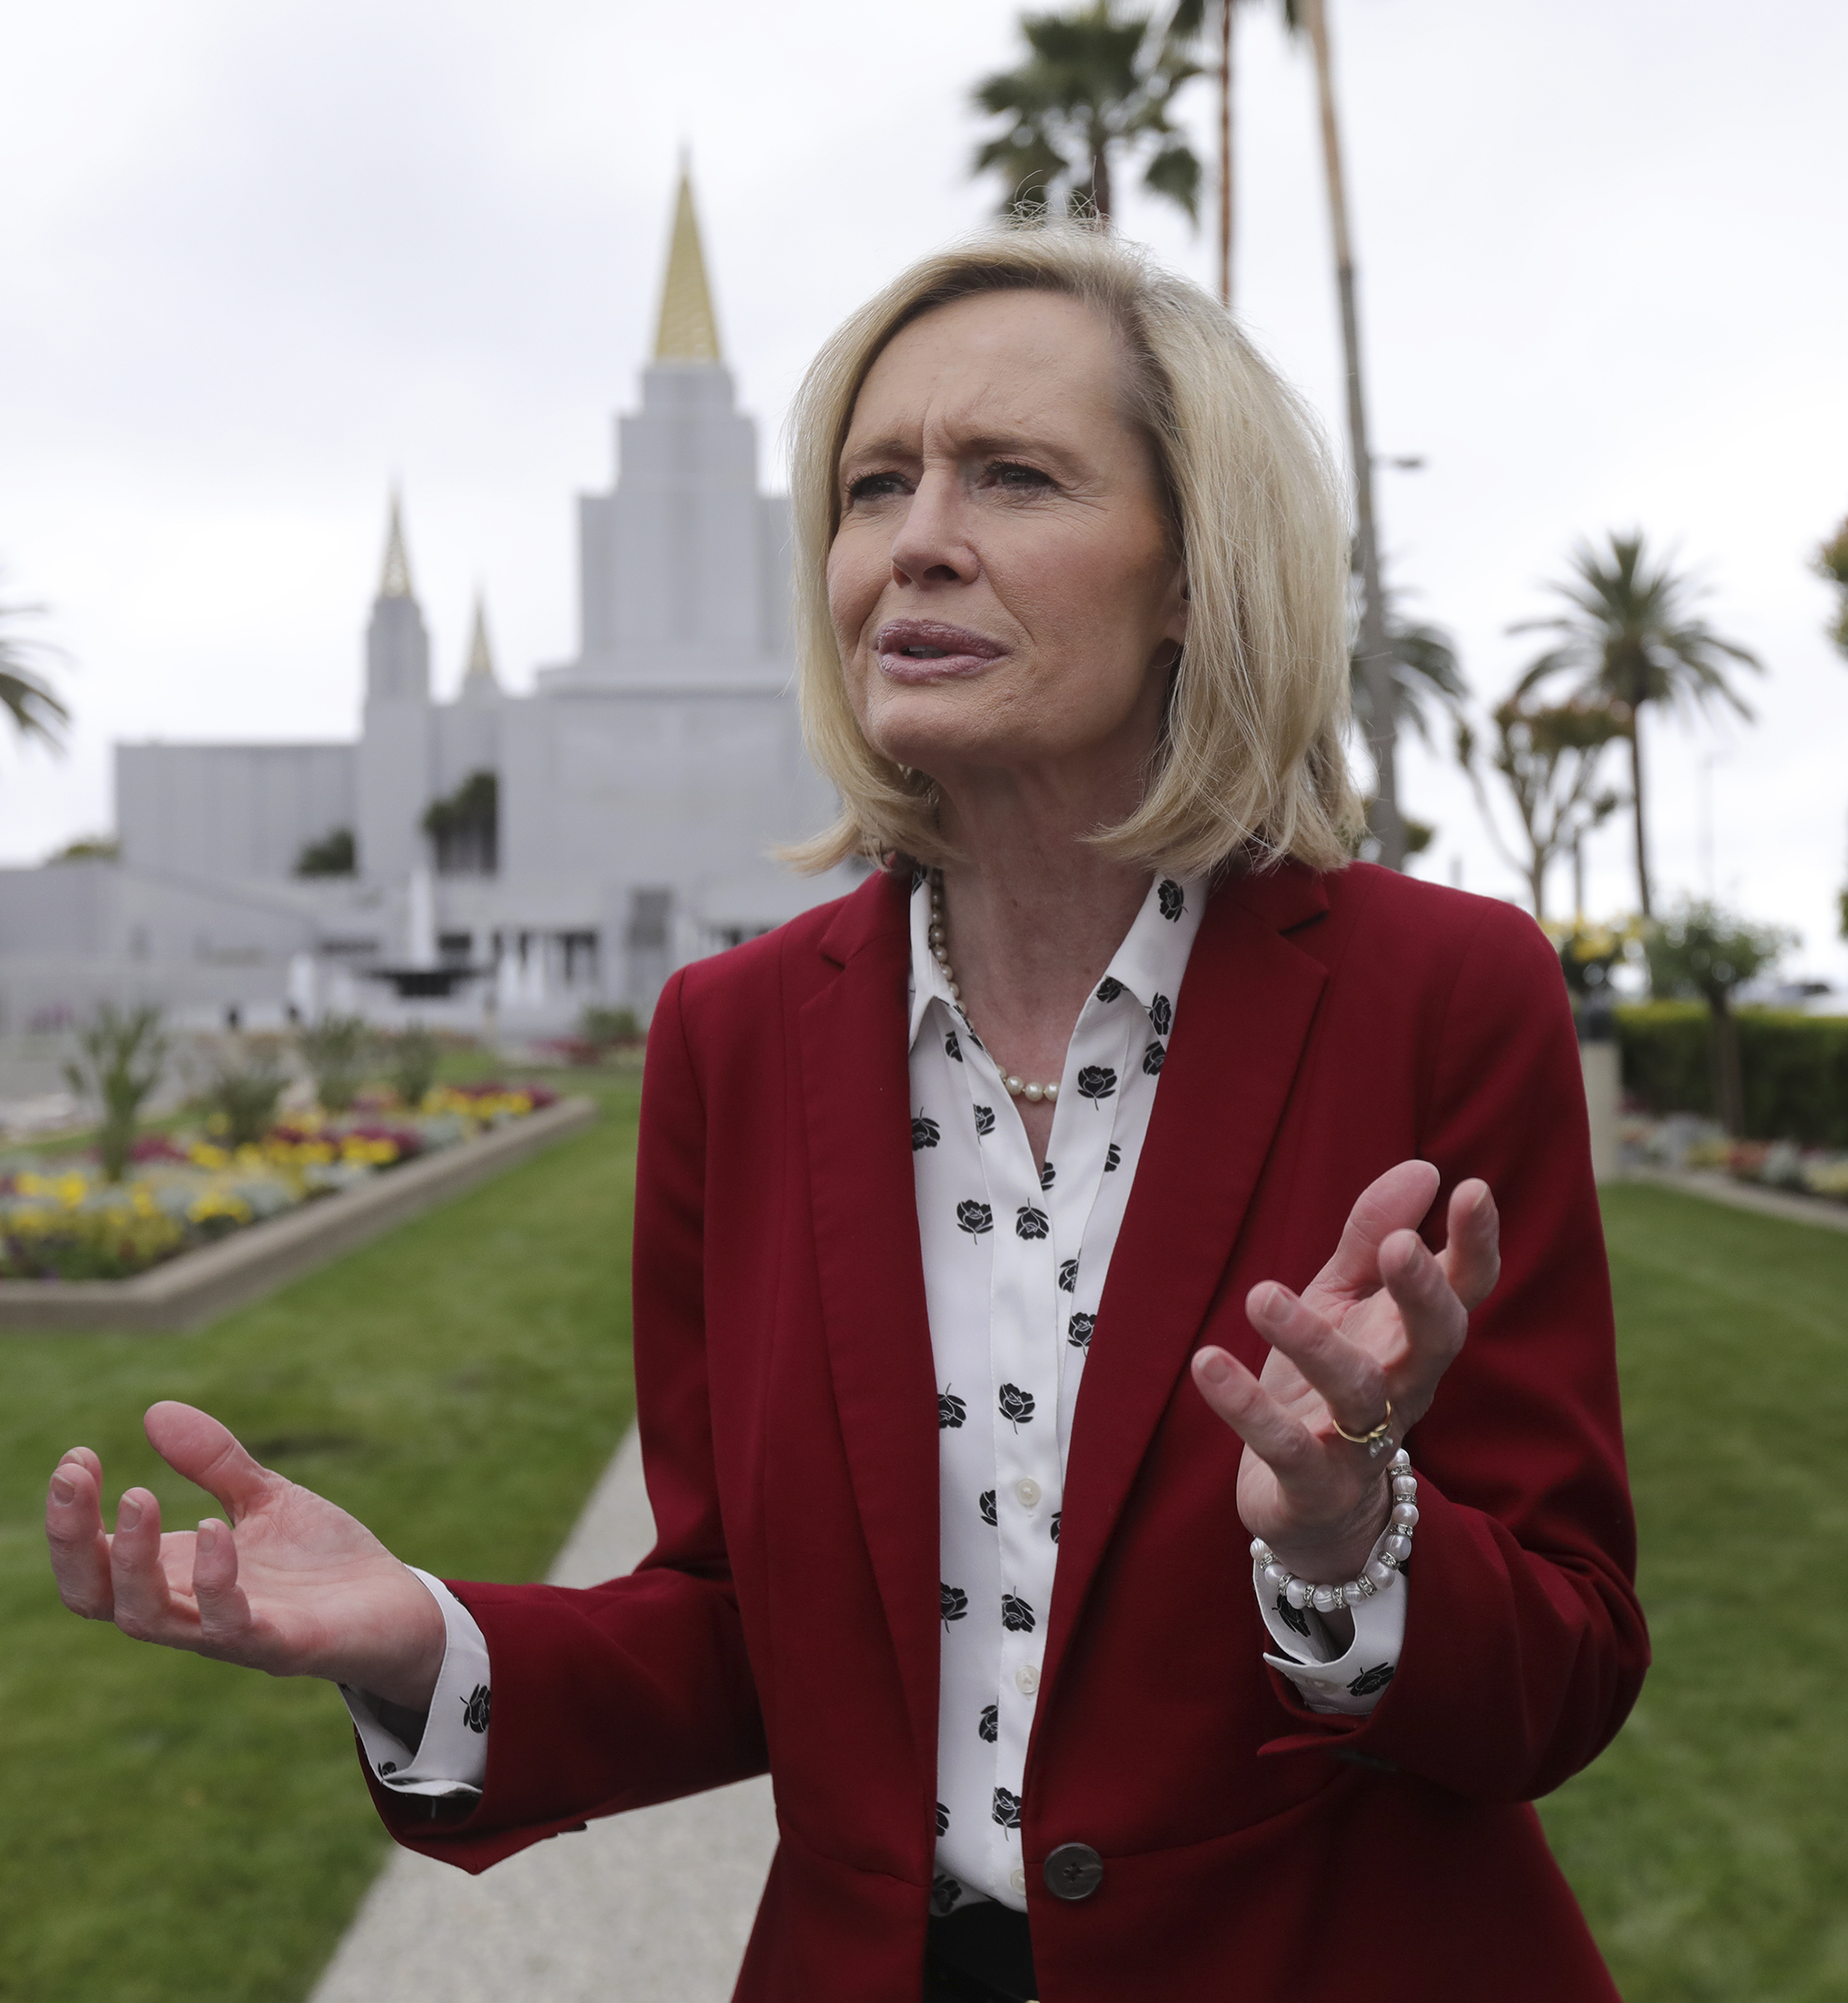 Sister Bonnie H. Cordon, Young Women general president, talks to members of the media outside of the newly renovated Oakland California Temple, of The Church of Jesus Christ of Latter-day Saints, in Oakland, Calif., on Monday, May 6, 2019.